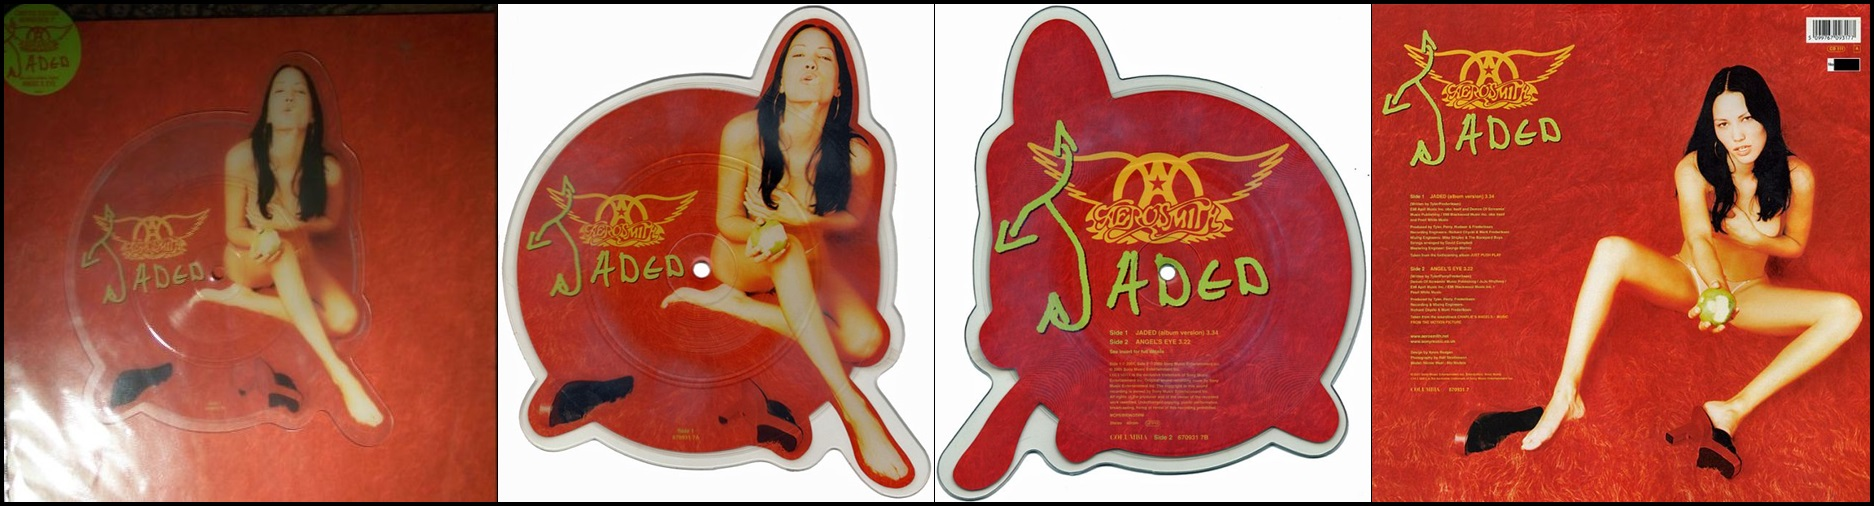 Aerosmith-Jaded-Picture Disc-Cover -Insert-Sticker